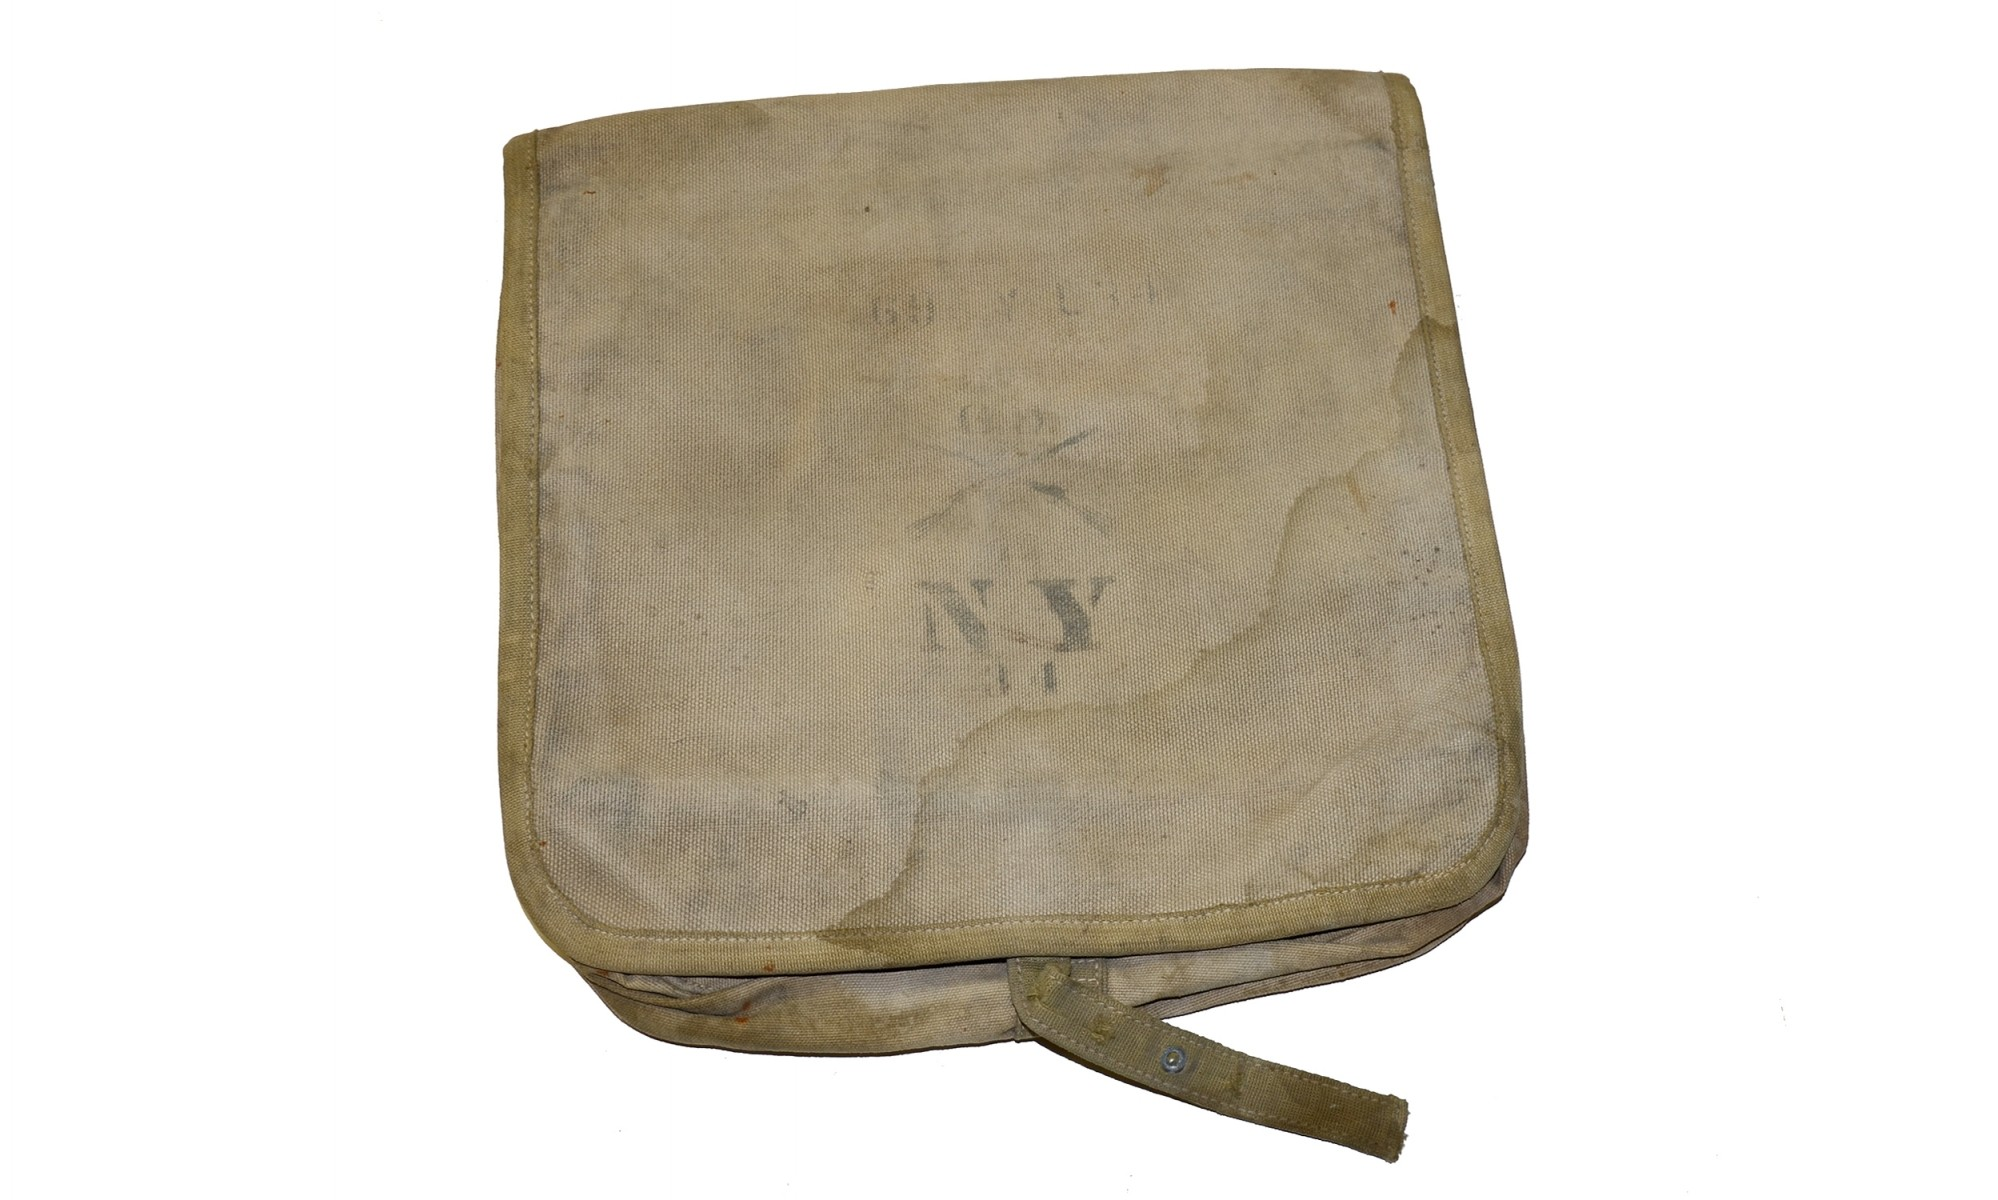 MODEL 1904 HAVERSACK ID'D TO 69TH NEW YORK INFANTRY